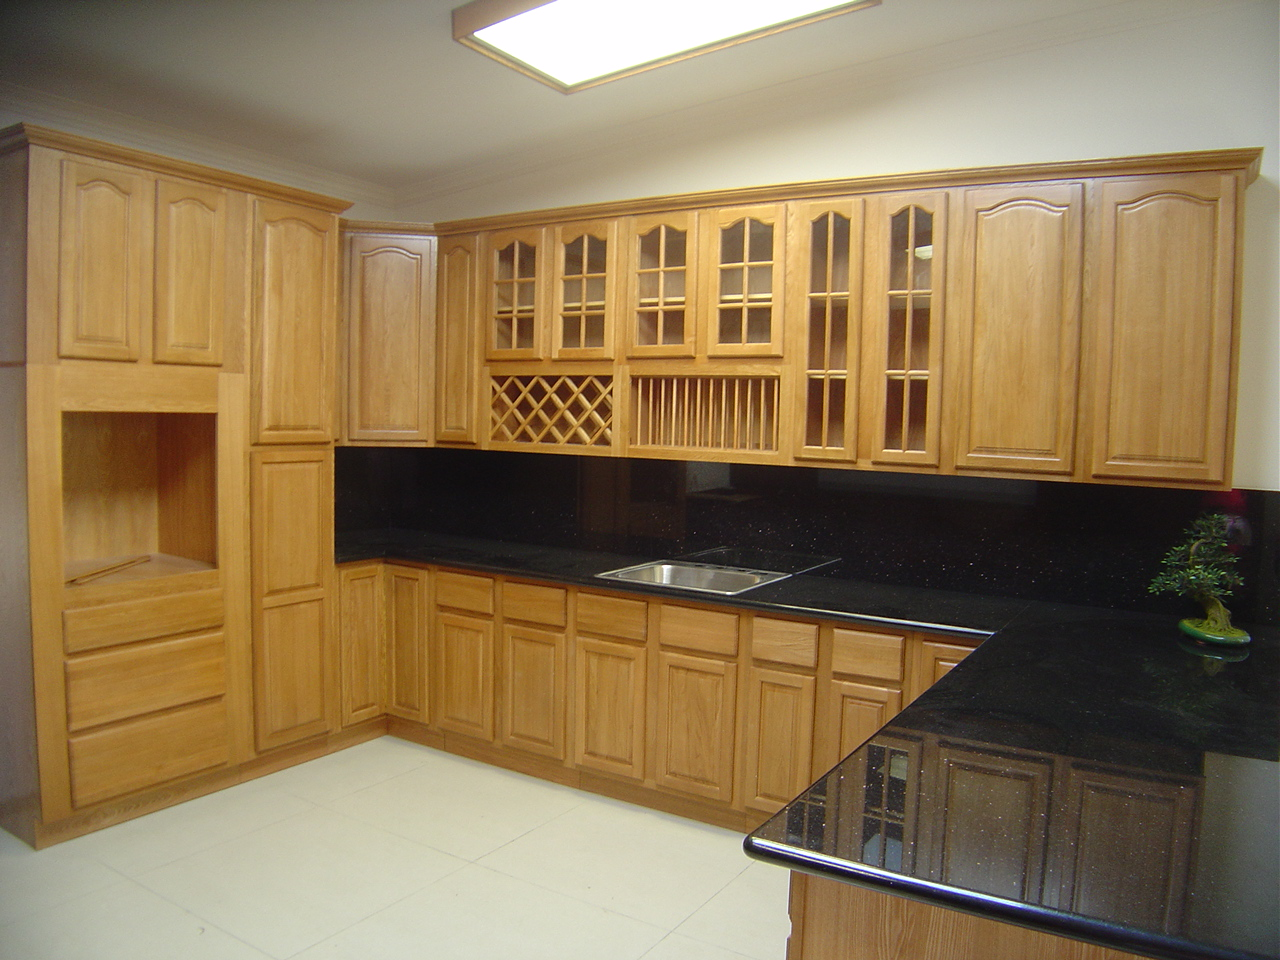 Kitchen wall cabinets photo - 2